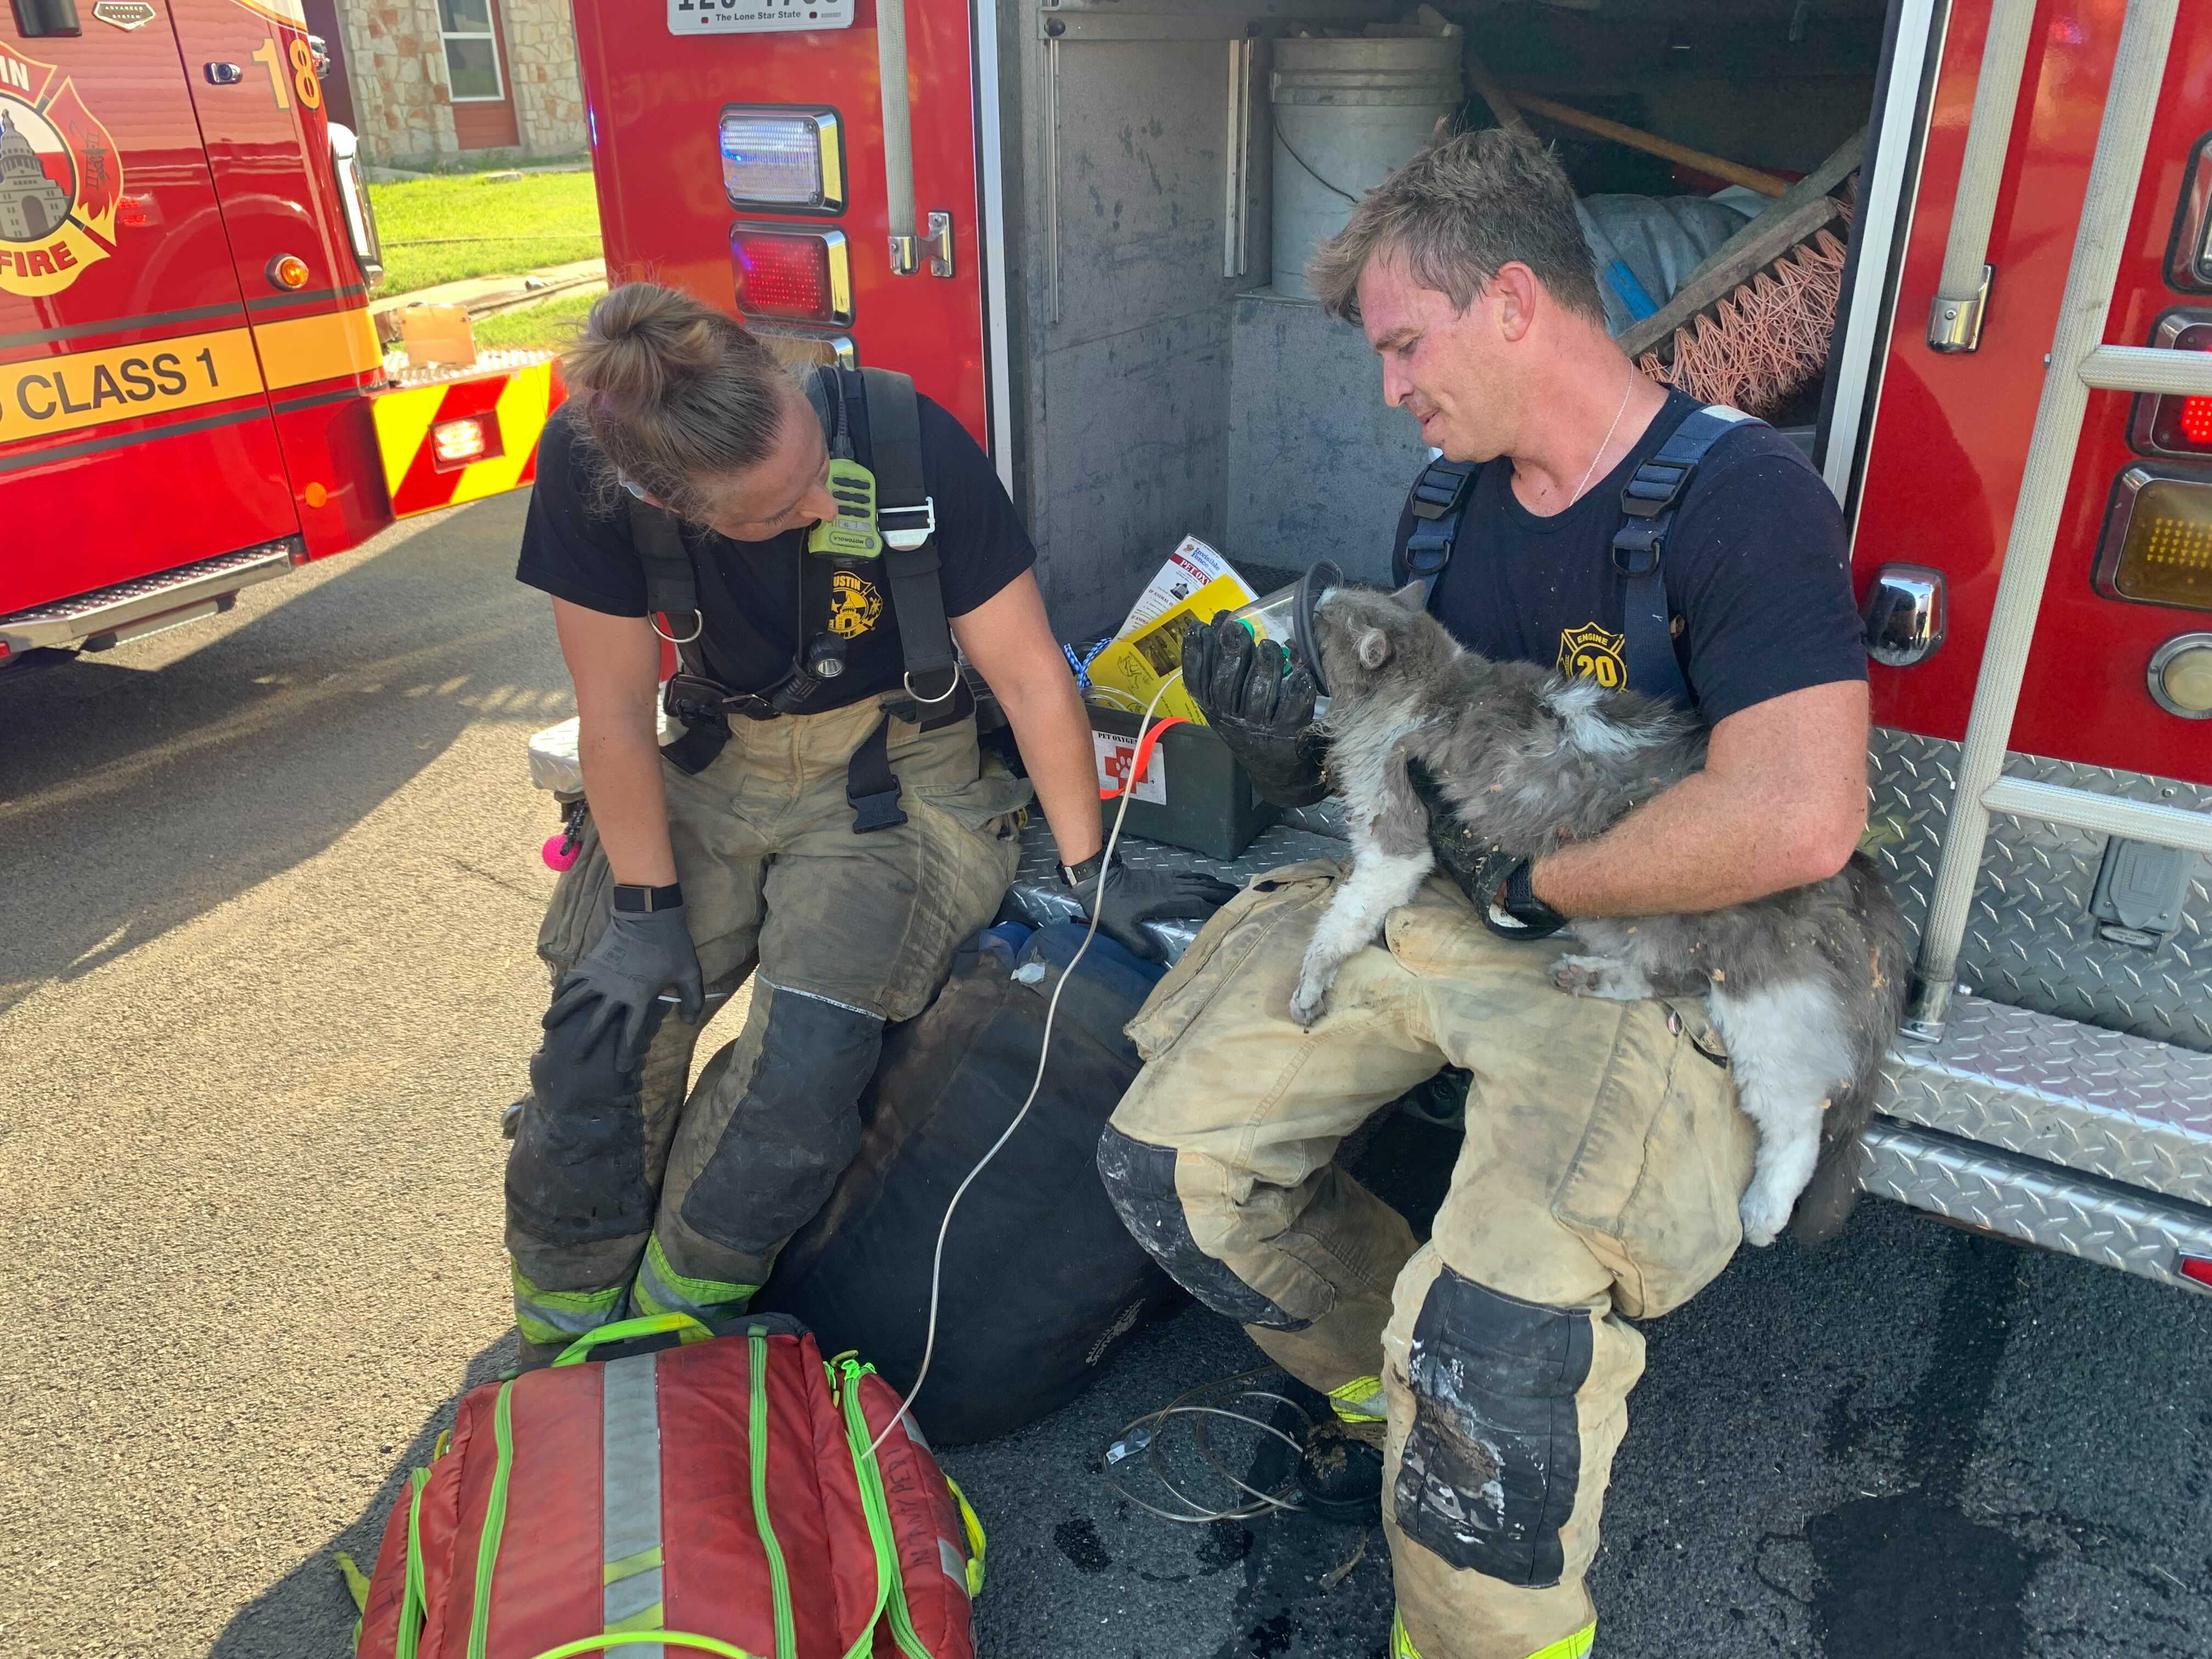 Austin Fire crews rescued one dog and one cat from a house fire in east Austin June 23, 2021 (AFD Photo)